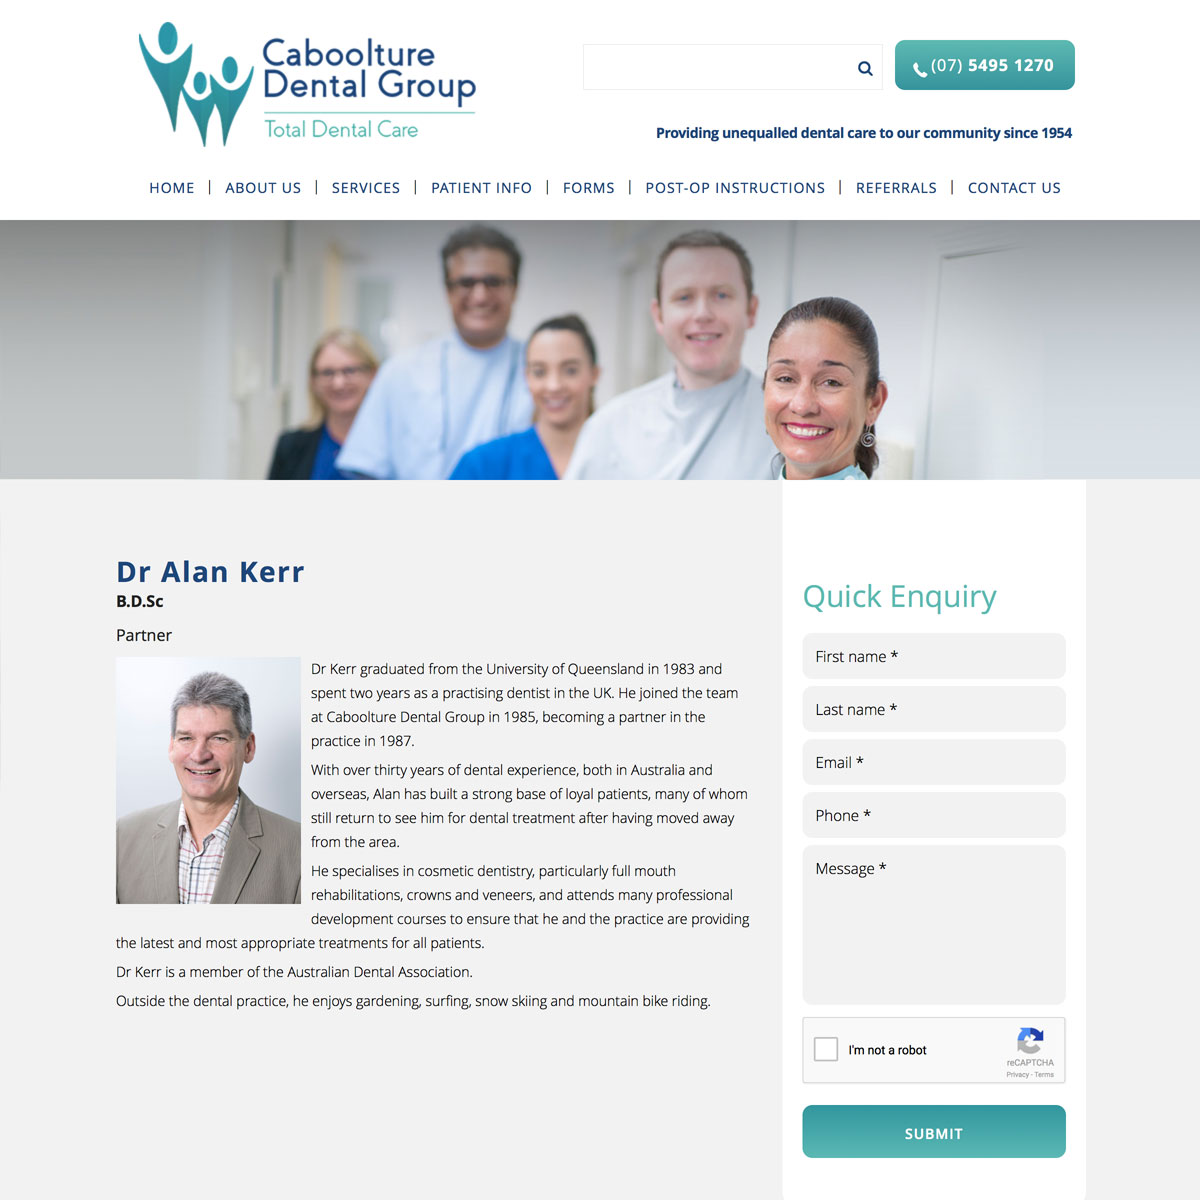 Caboolture Dental - Dr Alan Kerr